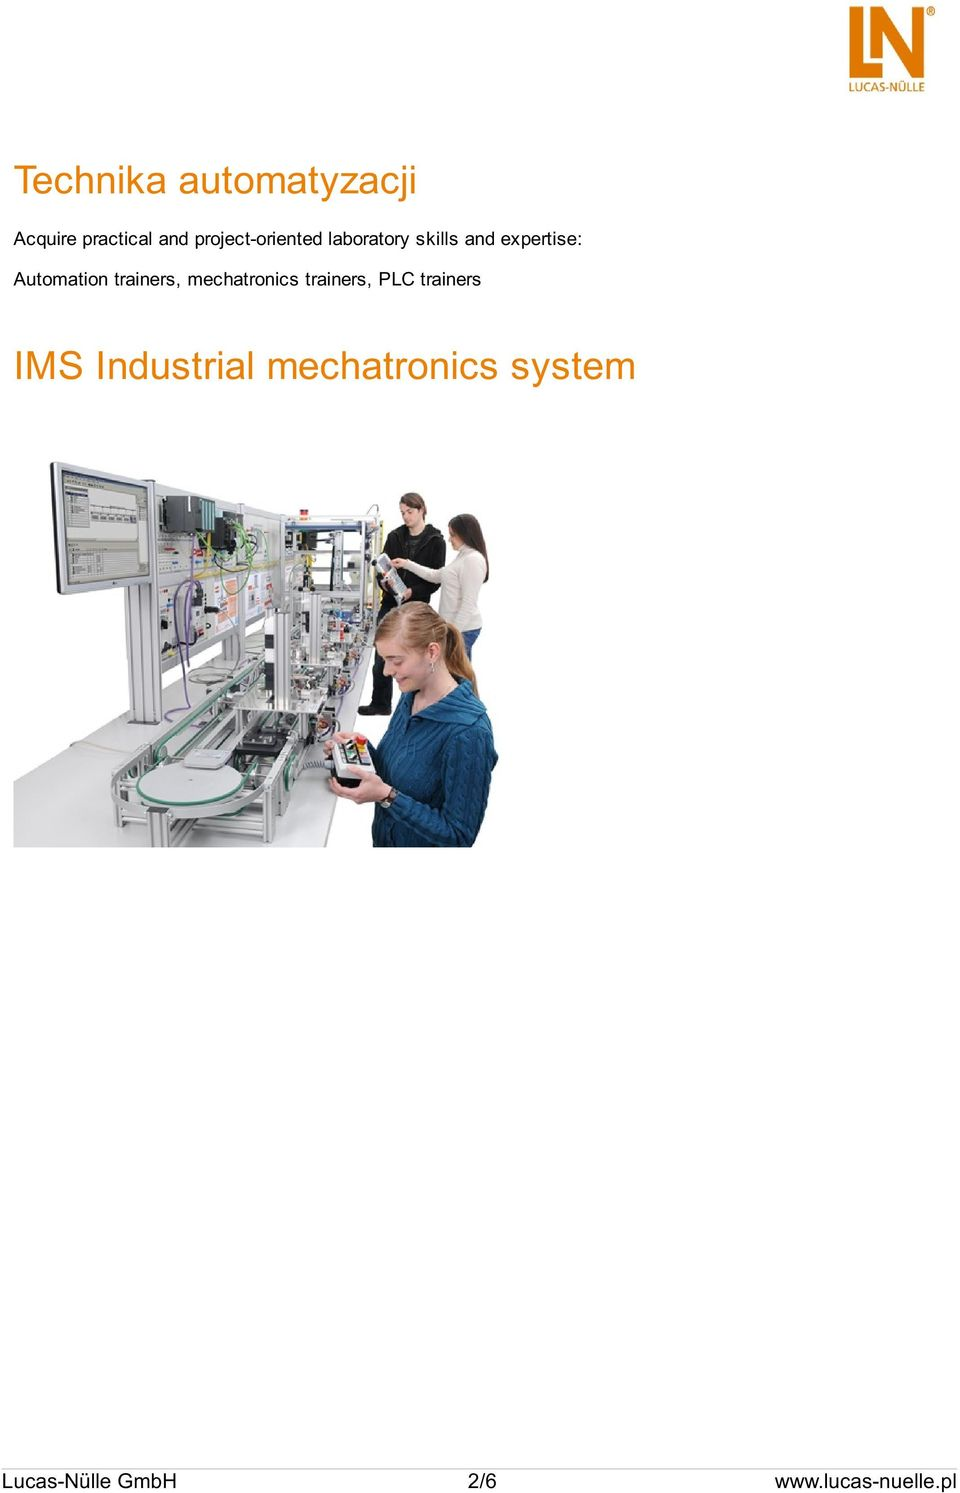 Automation trainers, mechatronics trainers, PLC trainers